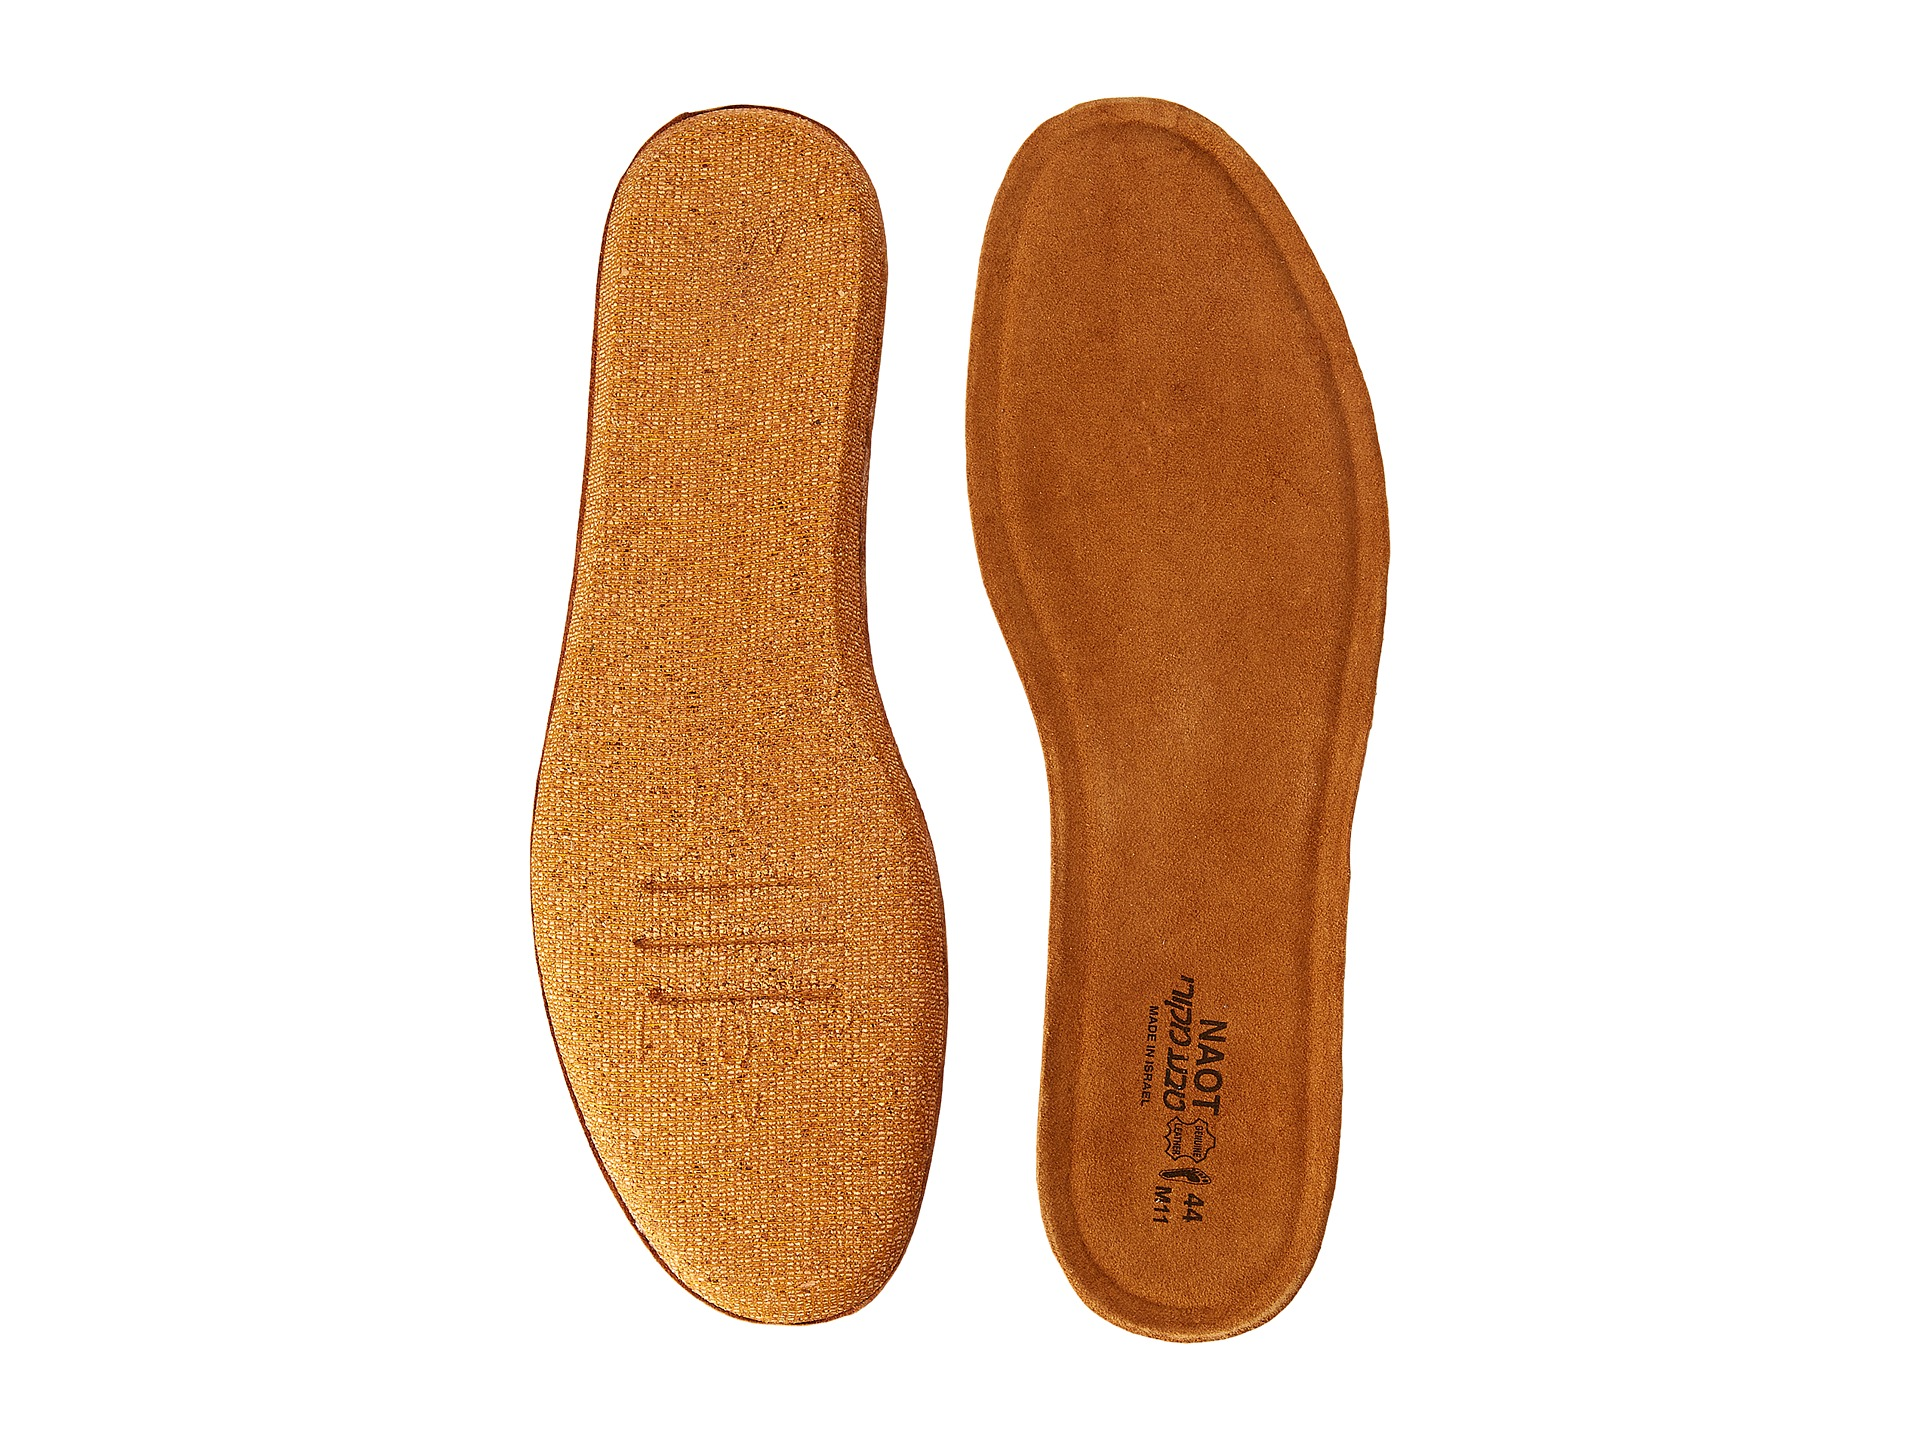 ugg insoles replacement nz